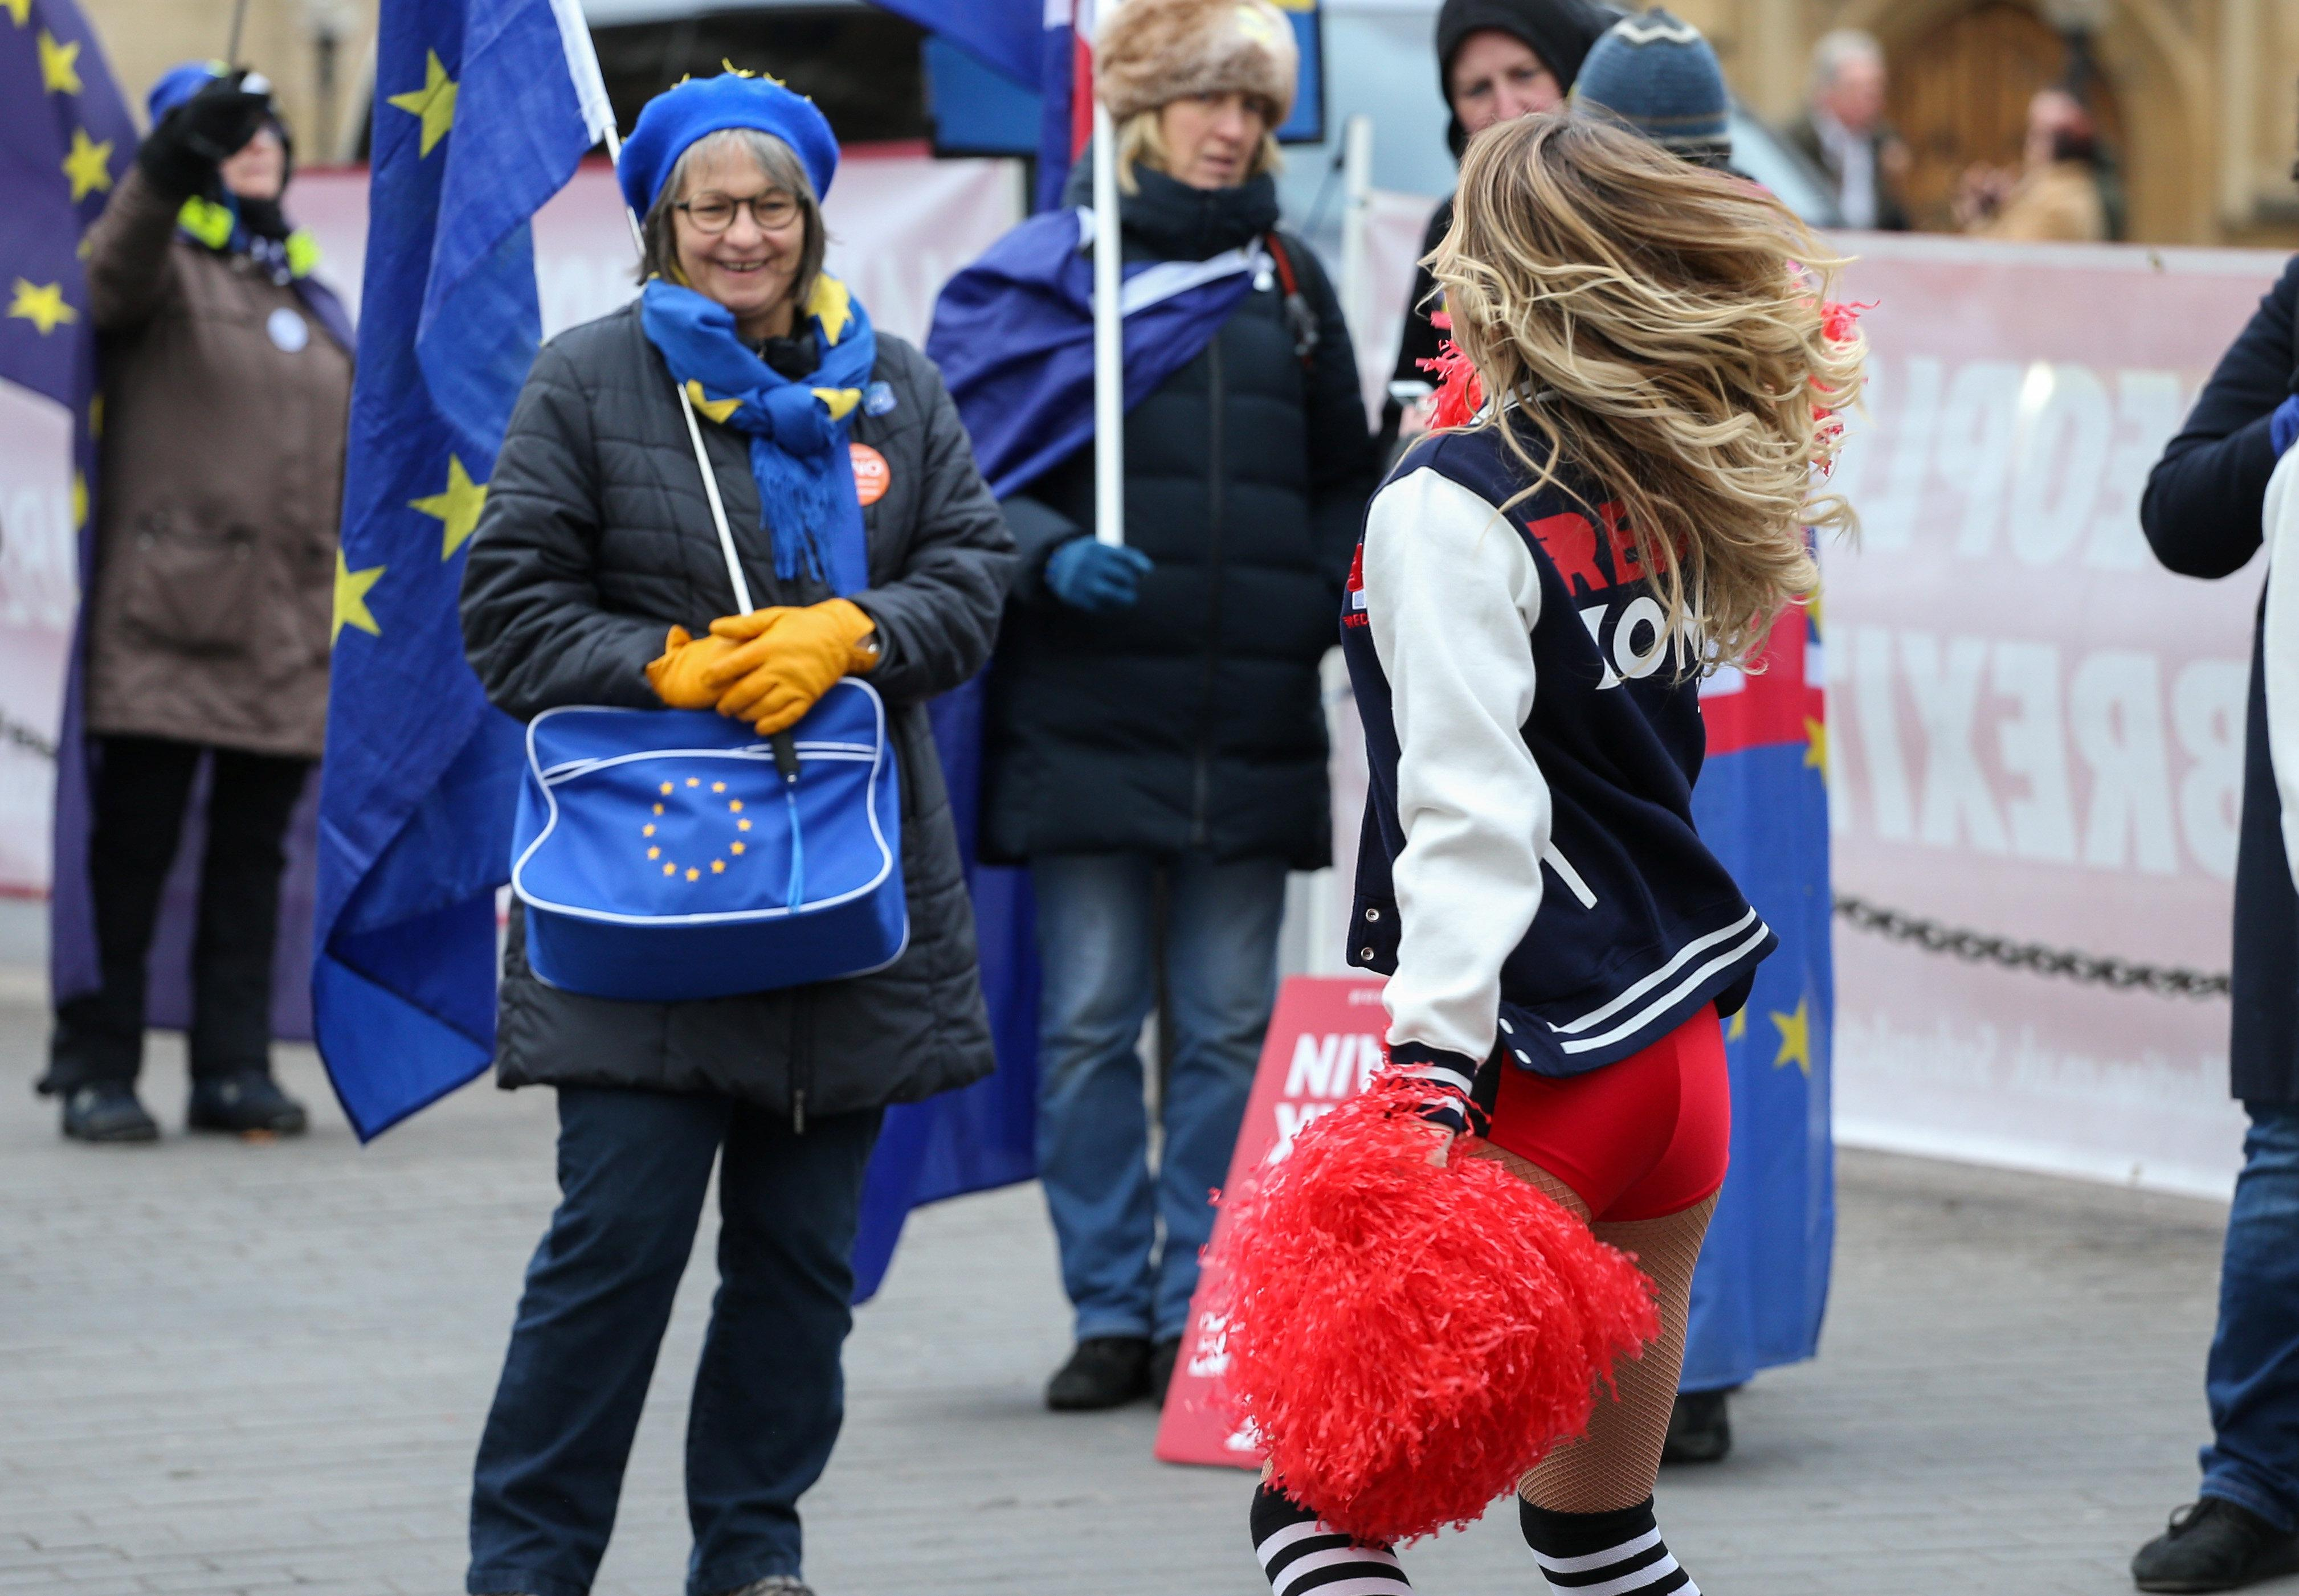 An anti-Brexit campaigner stops to admire the cheerleaders' performance